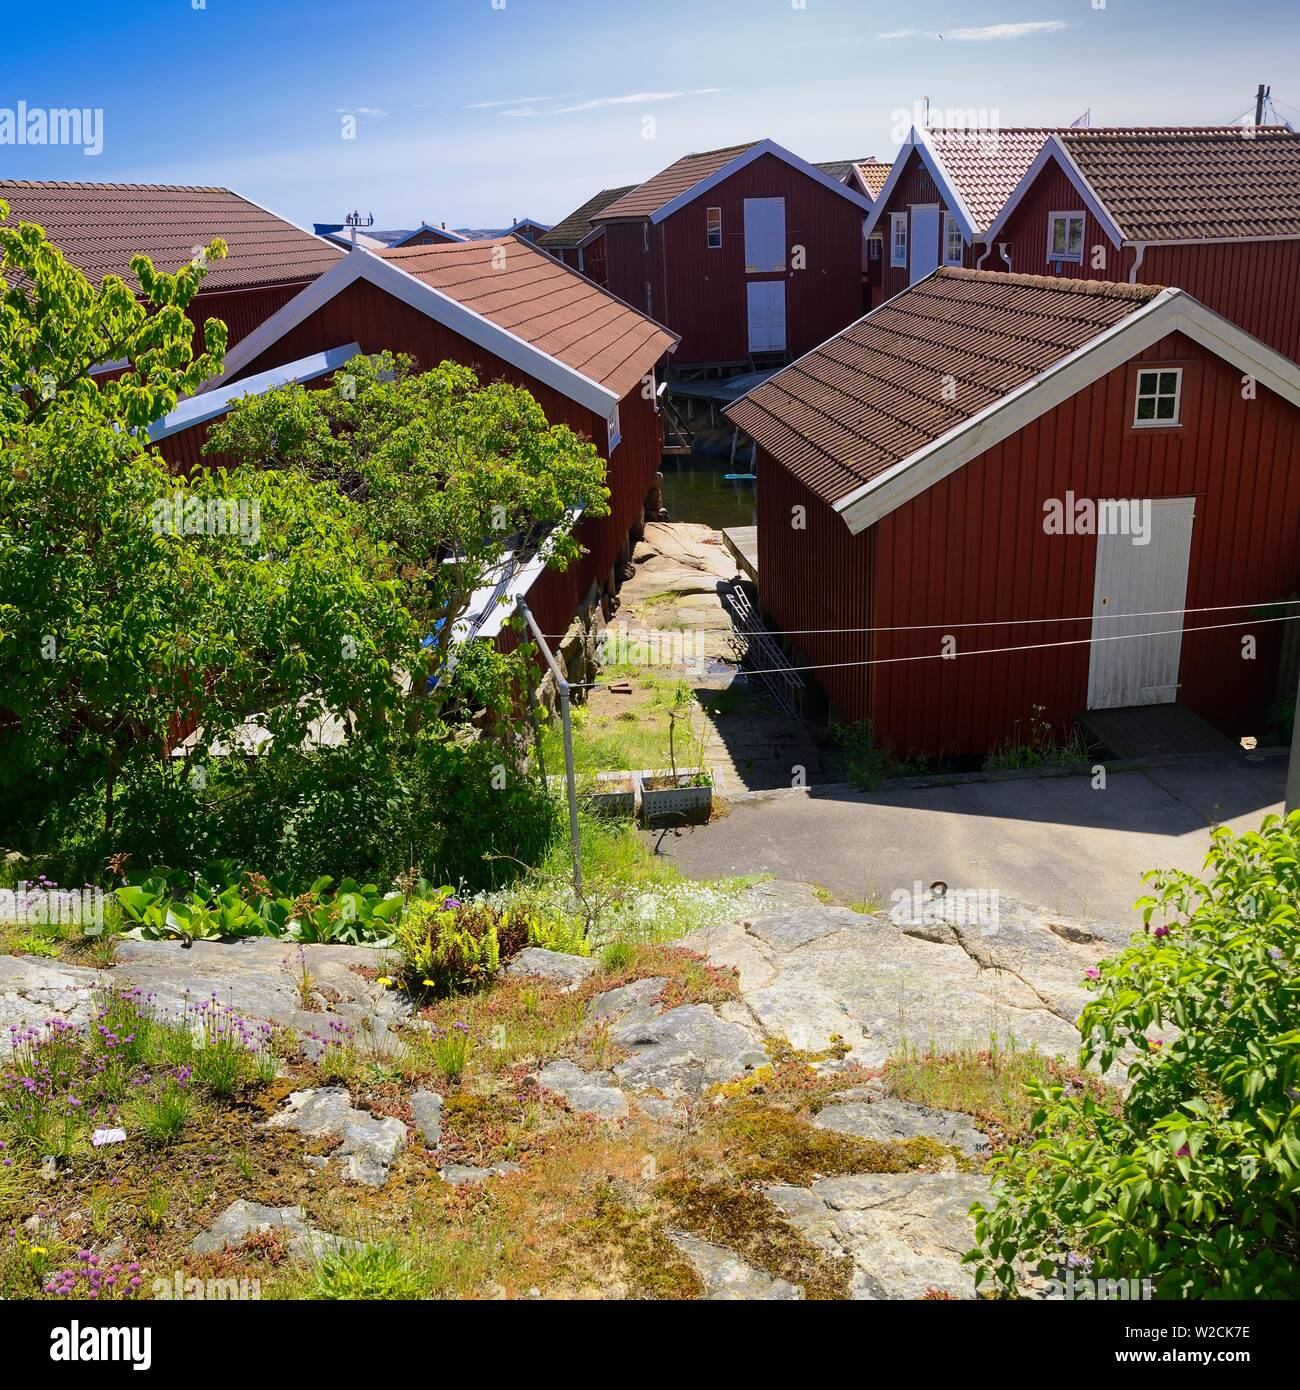 Old boathouses on poles - Stock Image